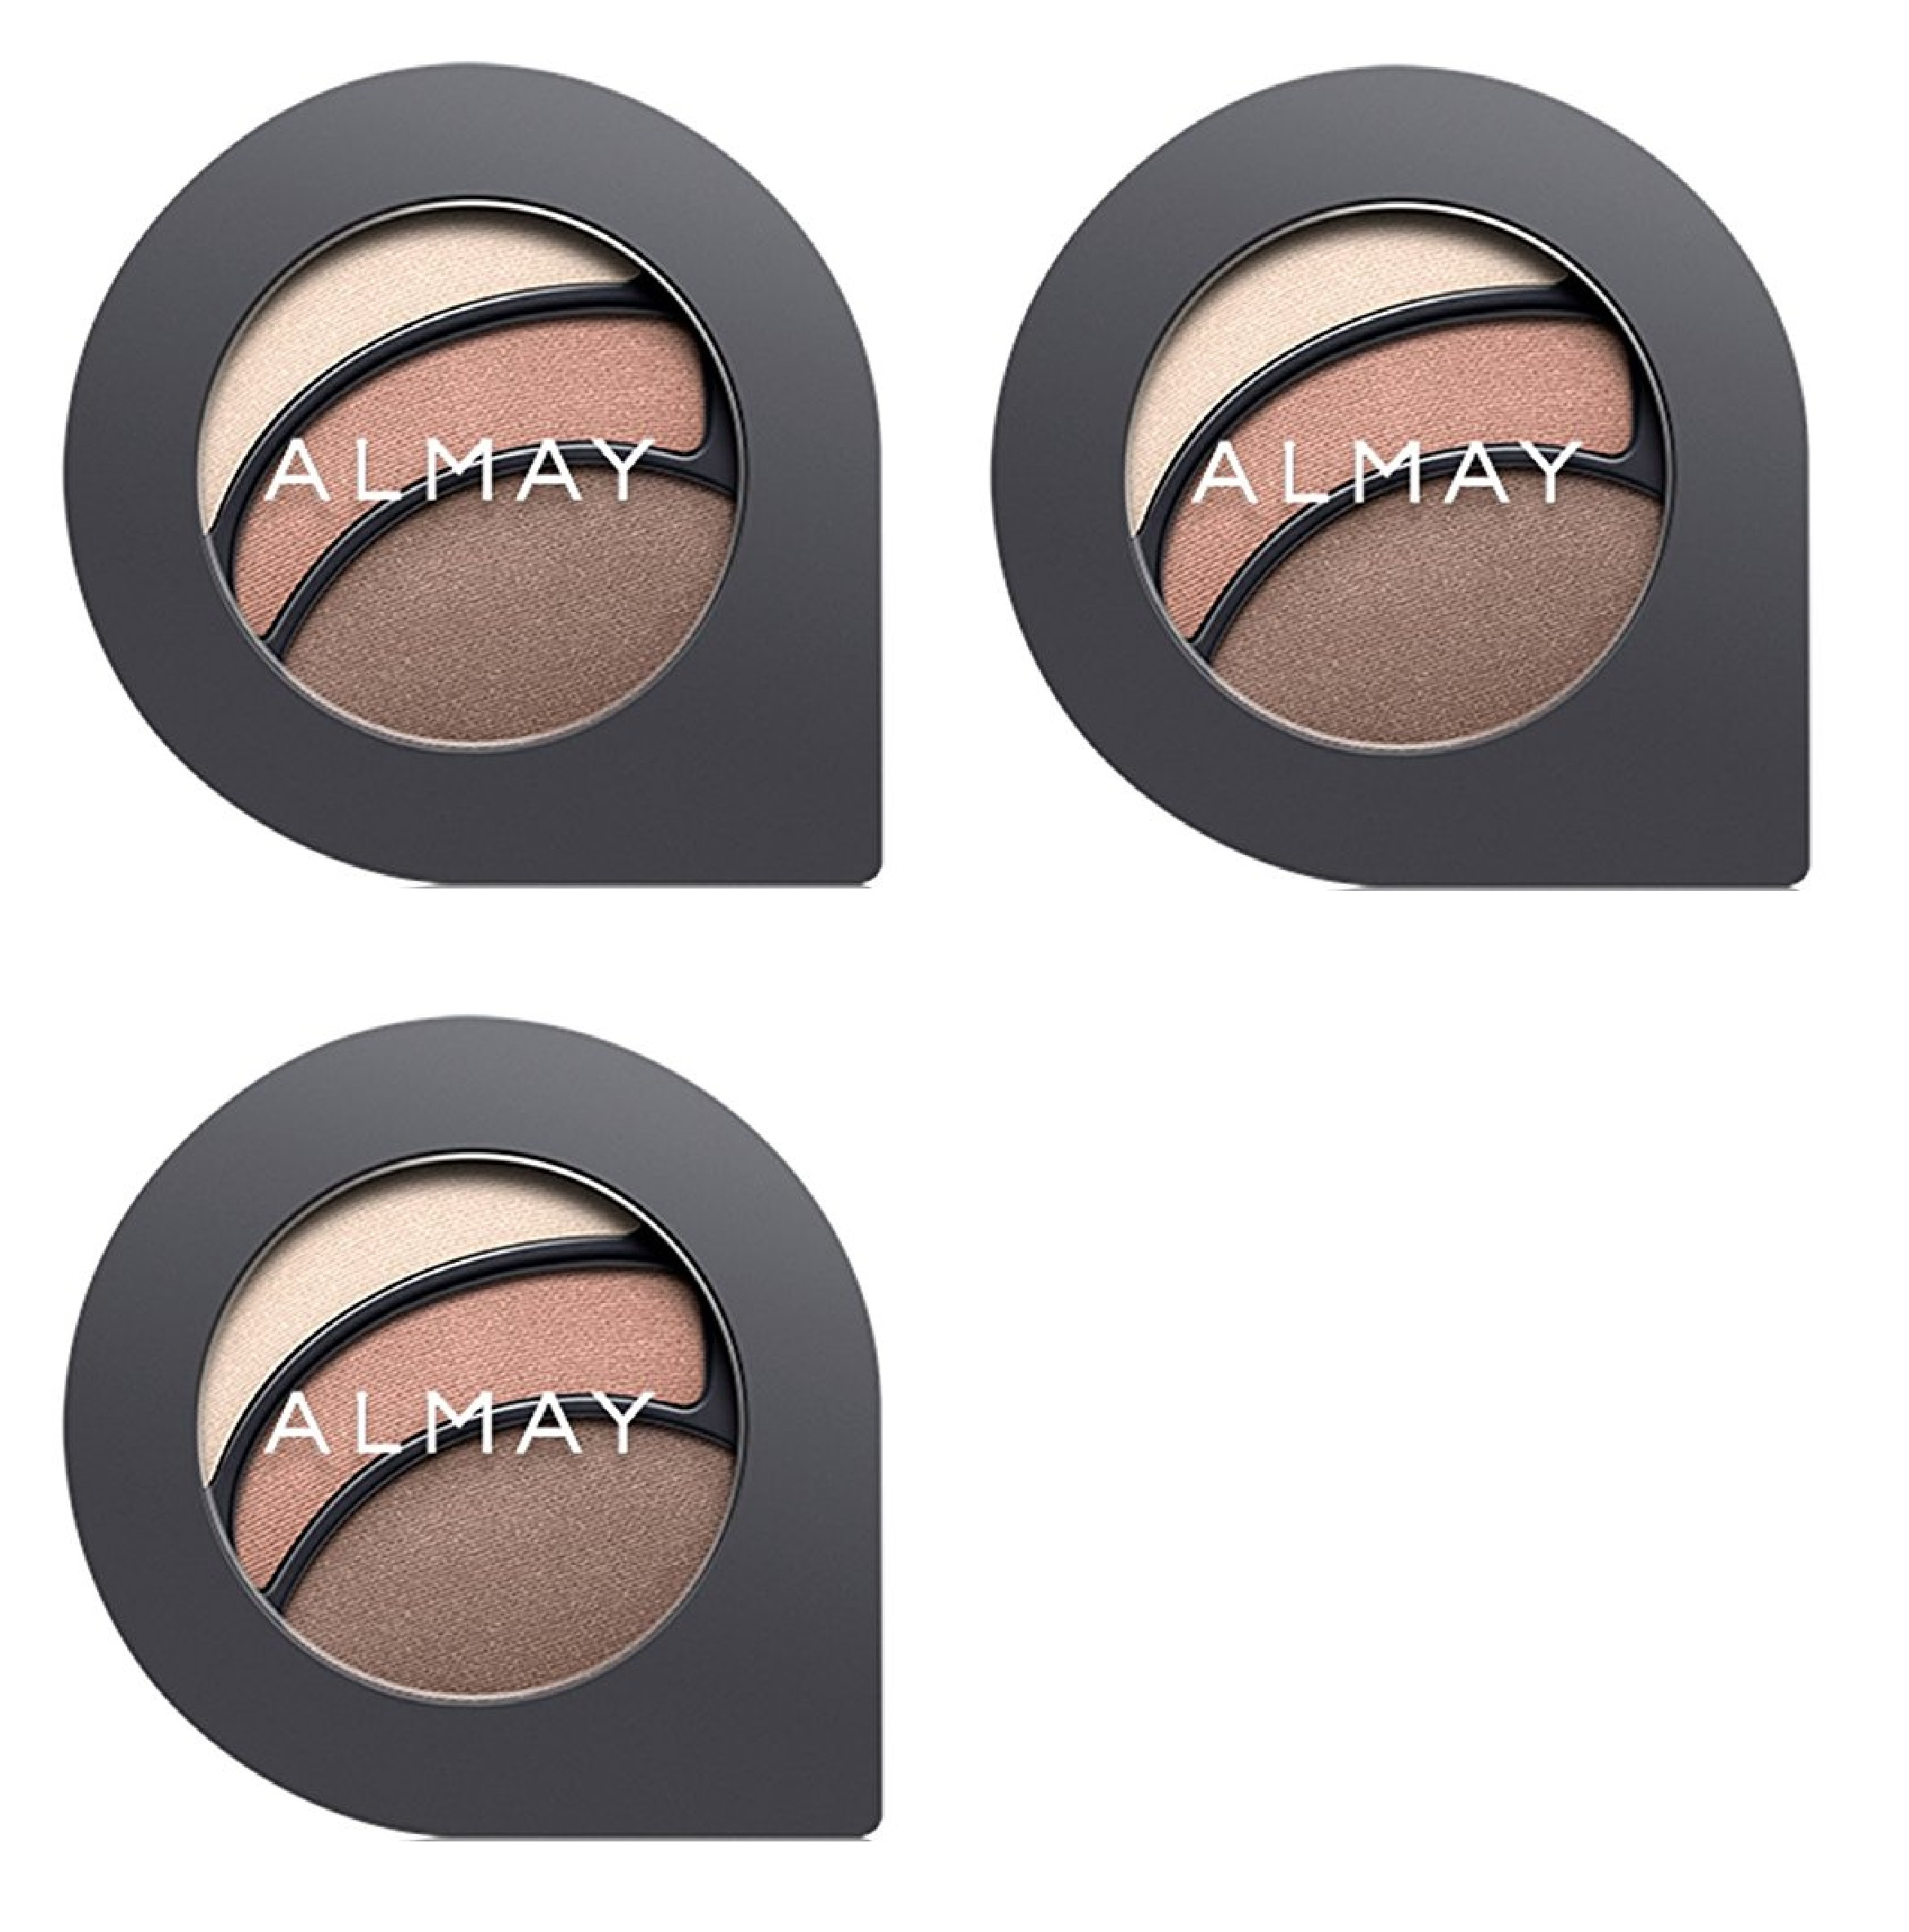 Almay The Complete Look Palette, Makeup for Eyes, Lips and Cheeks #100 Light/Medium Skin Tones (Pack of 3) + Makeup Blender Sponge